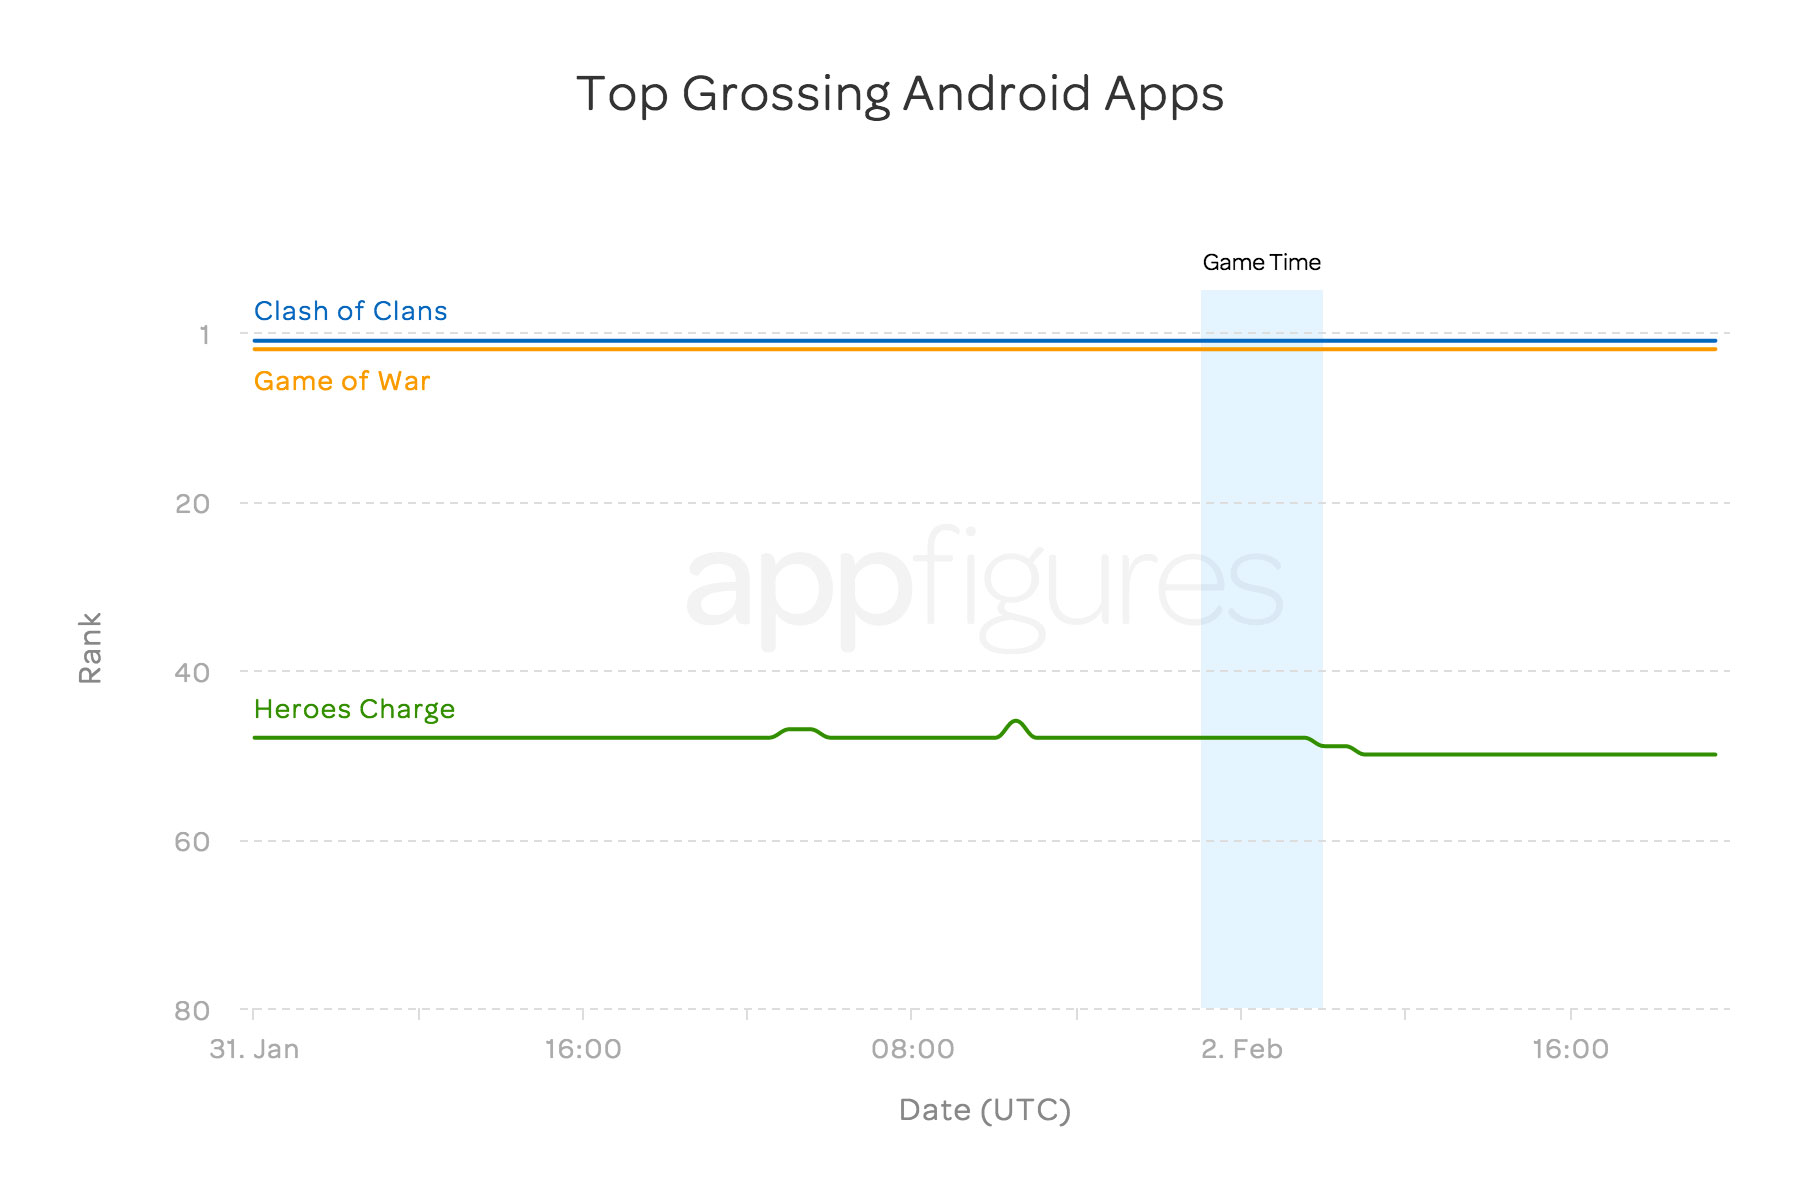 Super-Bowl-Ads-Android-Grossing-Chart.jpg